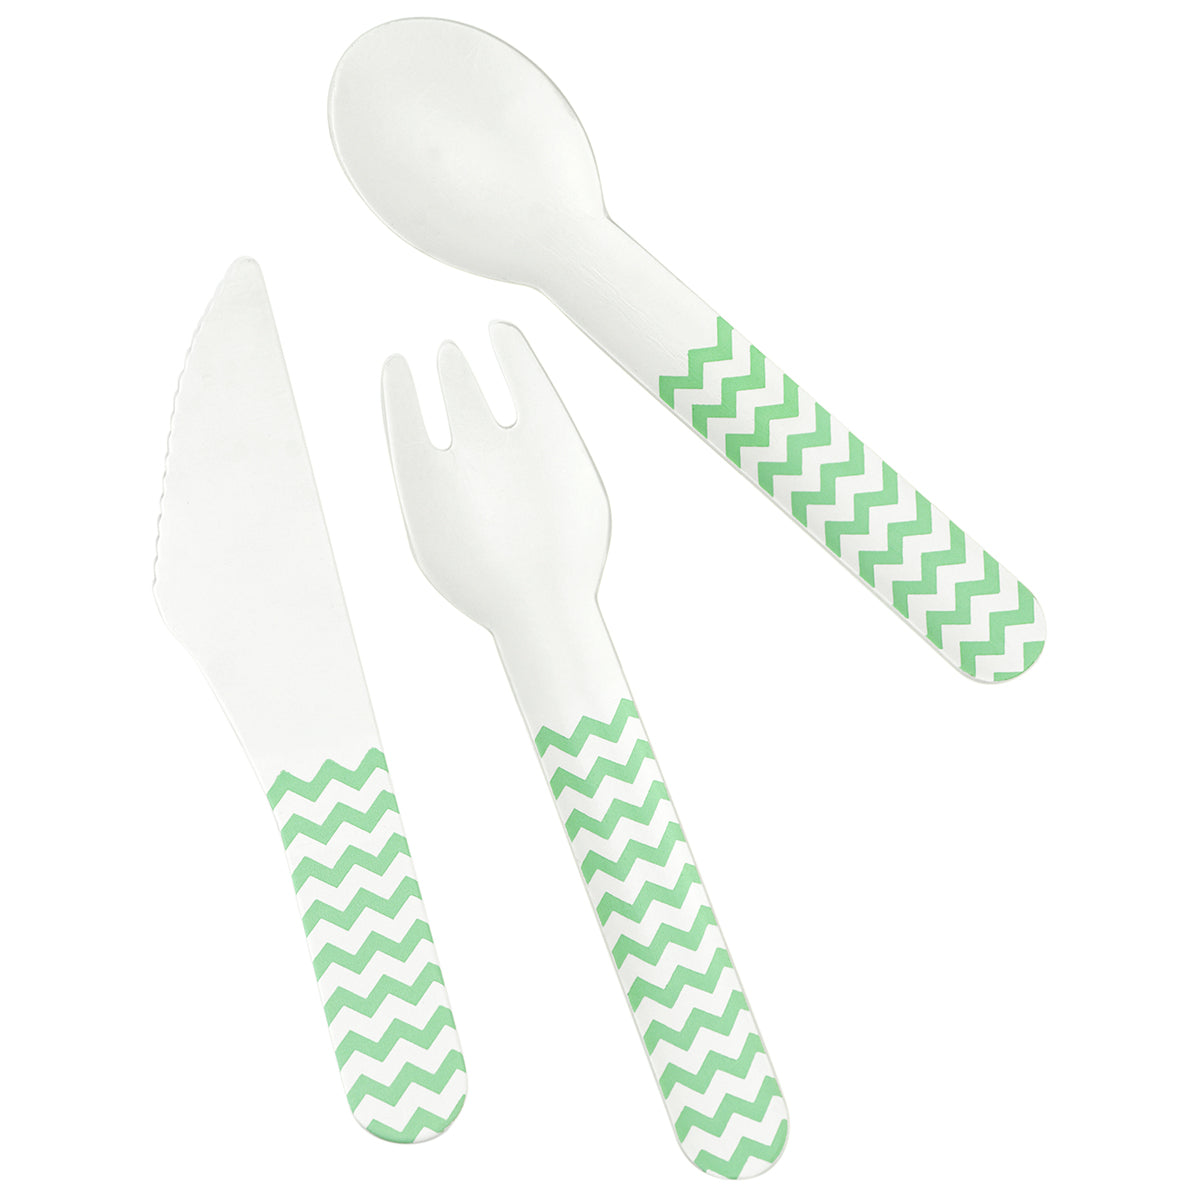 Displaying a set of paper cutlery with light green zigzag pattern, which includes knife, fork and spoon